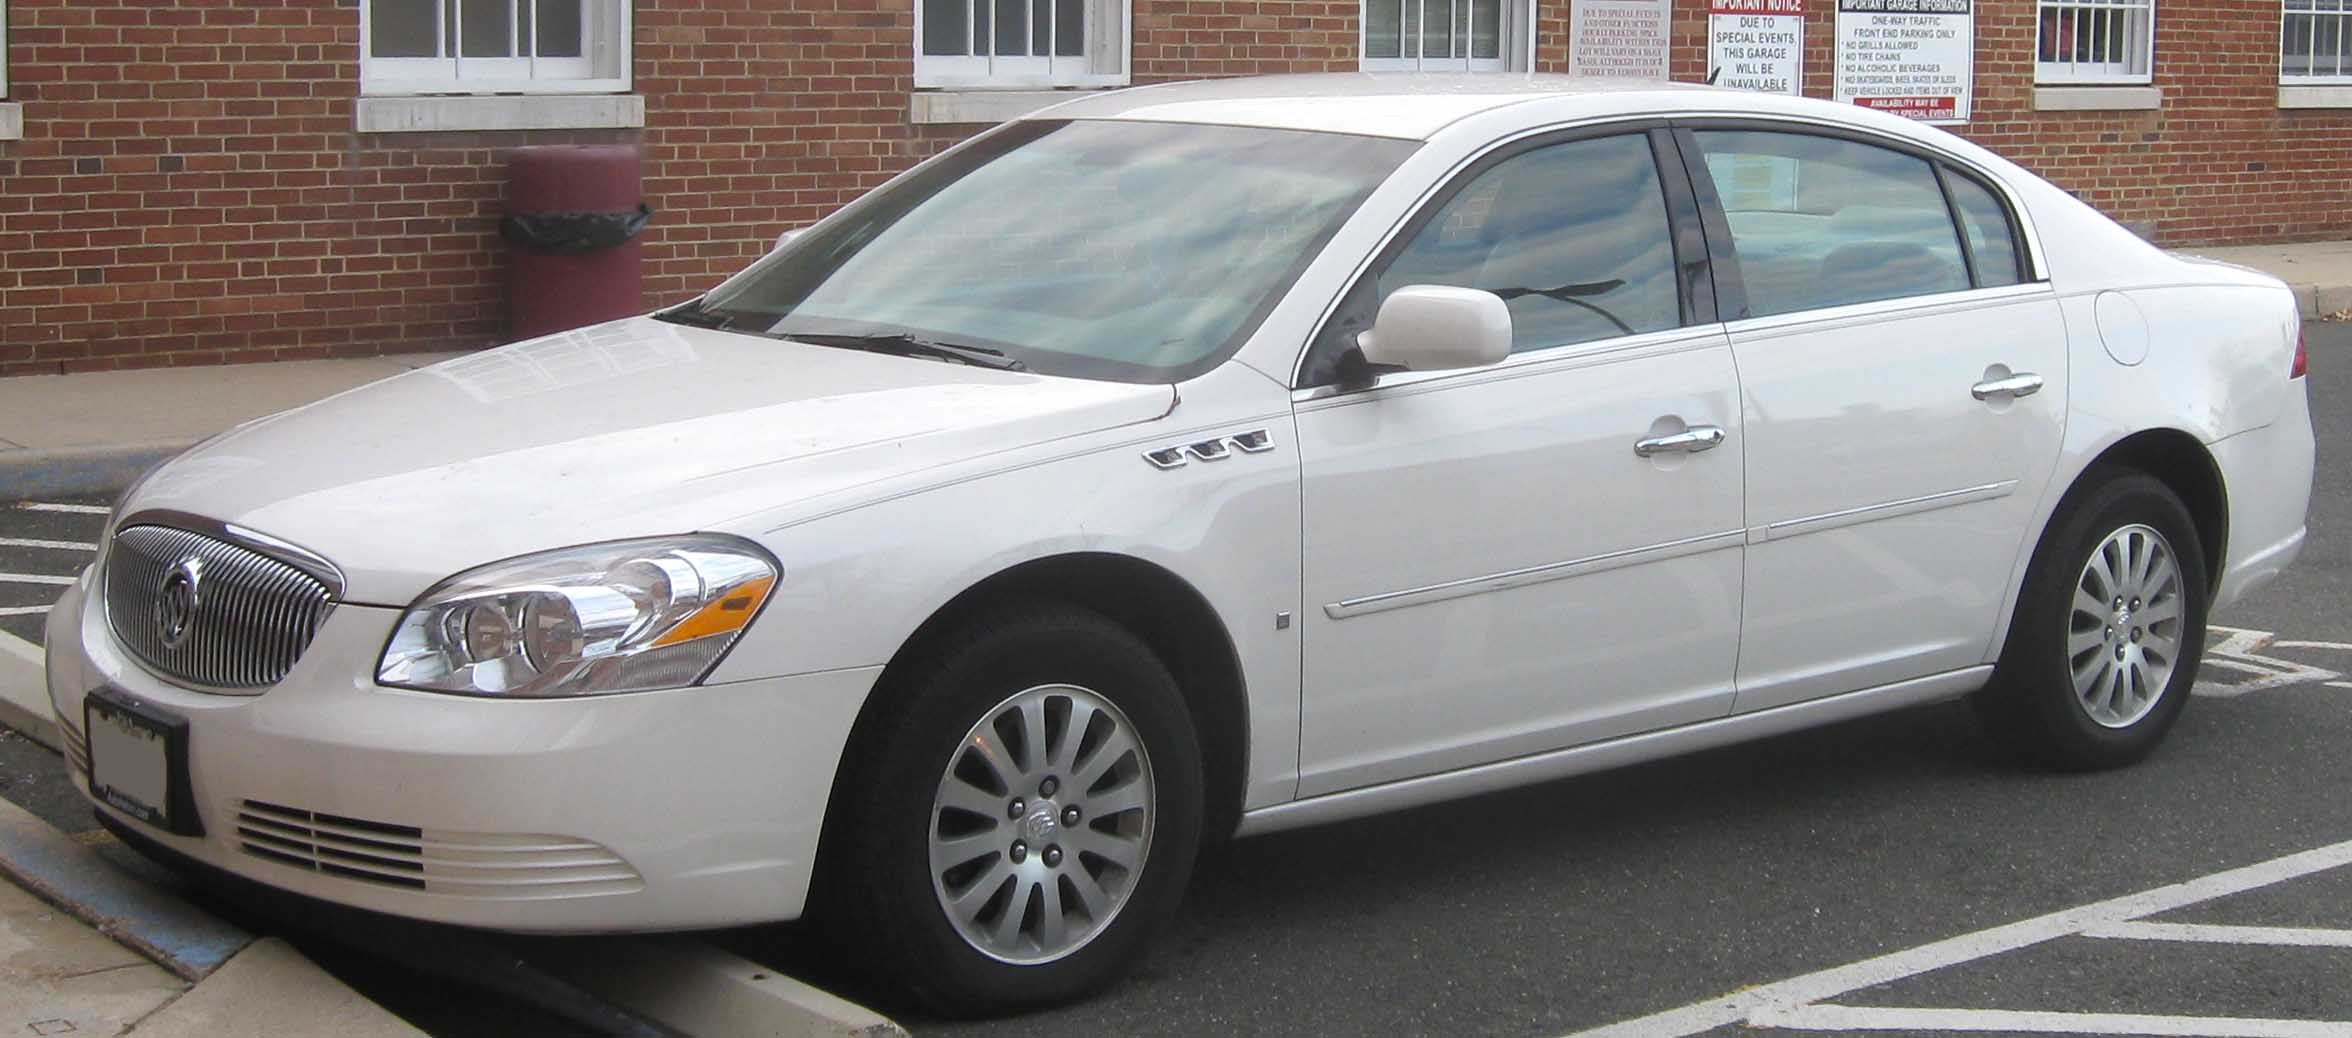 2009 Buick Lucerne Cxl >> 2008 Buick Lucerne – pictures, information and specs - Auto-Database.com